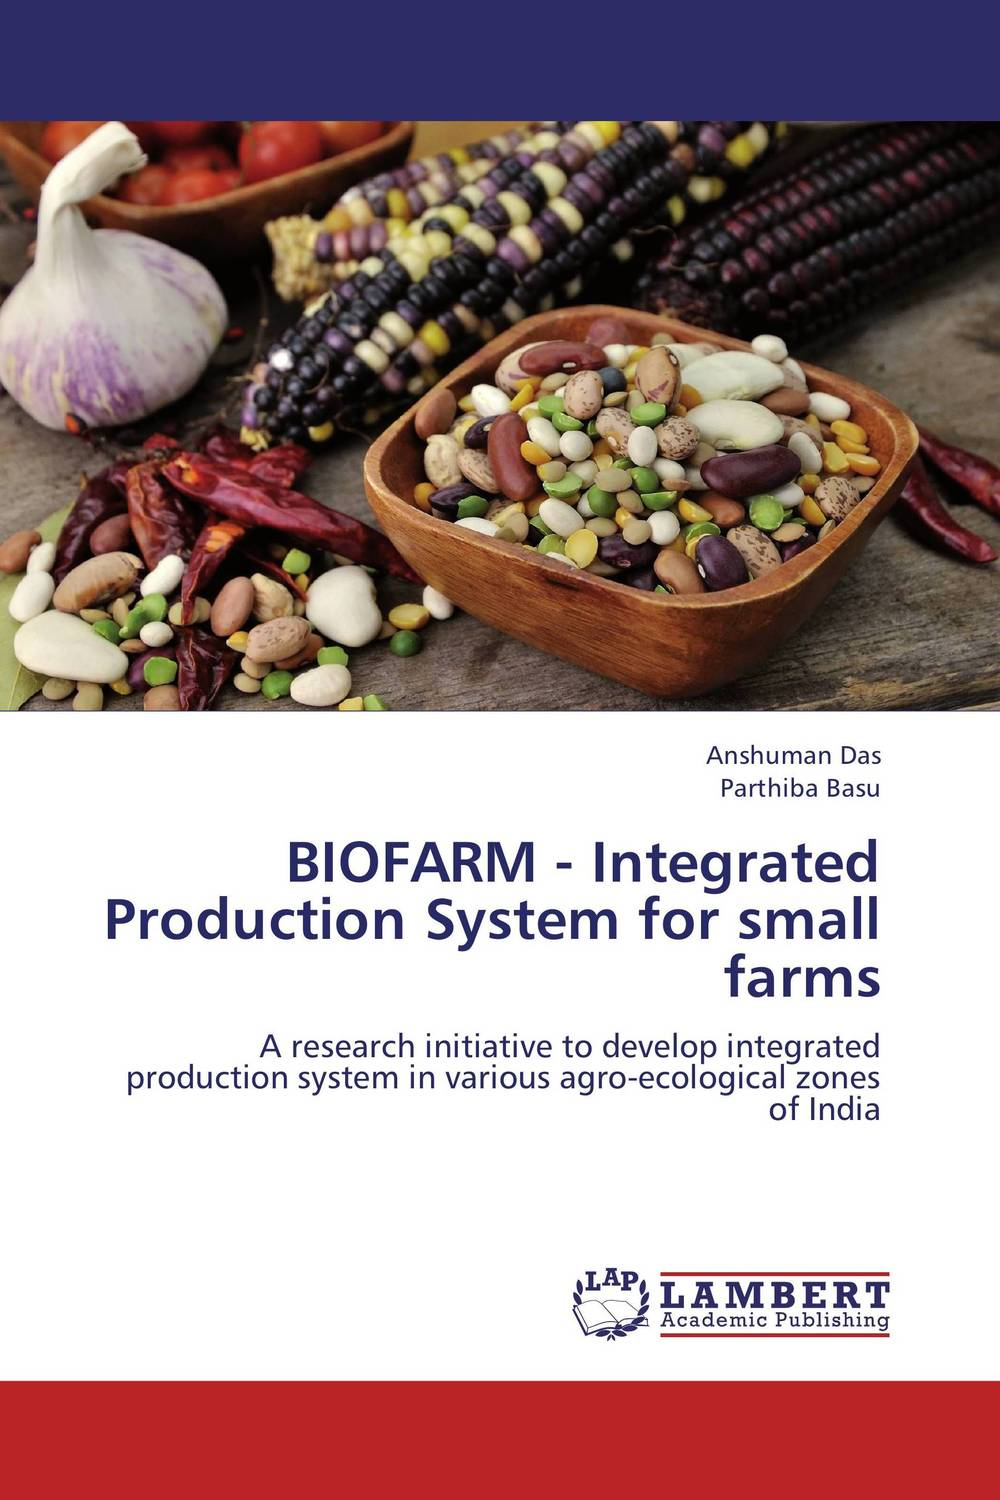 BIOFARM - Integrated Production System for small farms ornamental plant production in recycled water